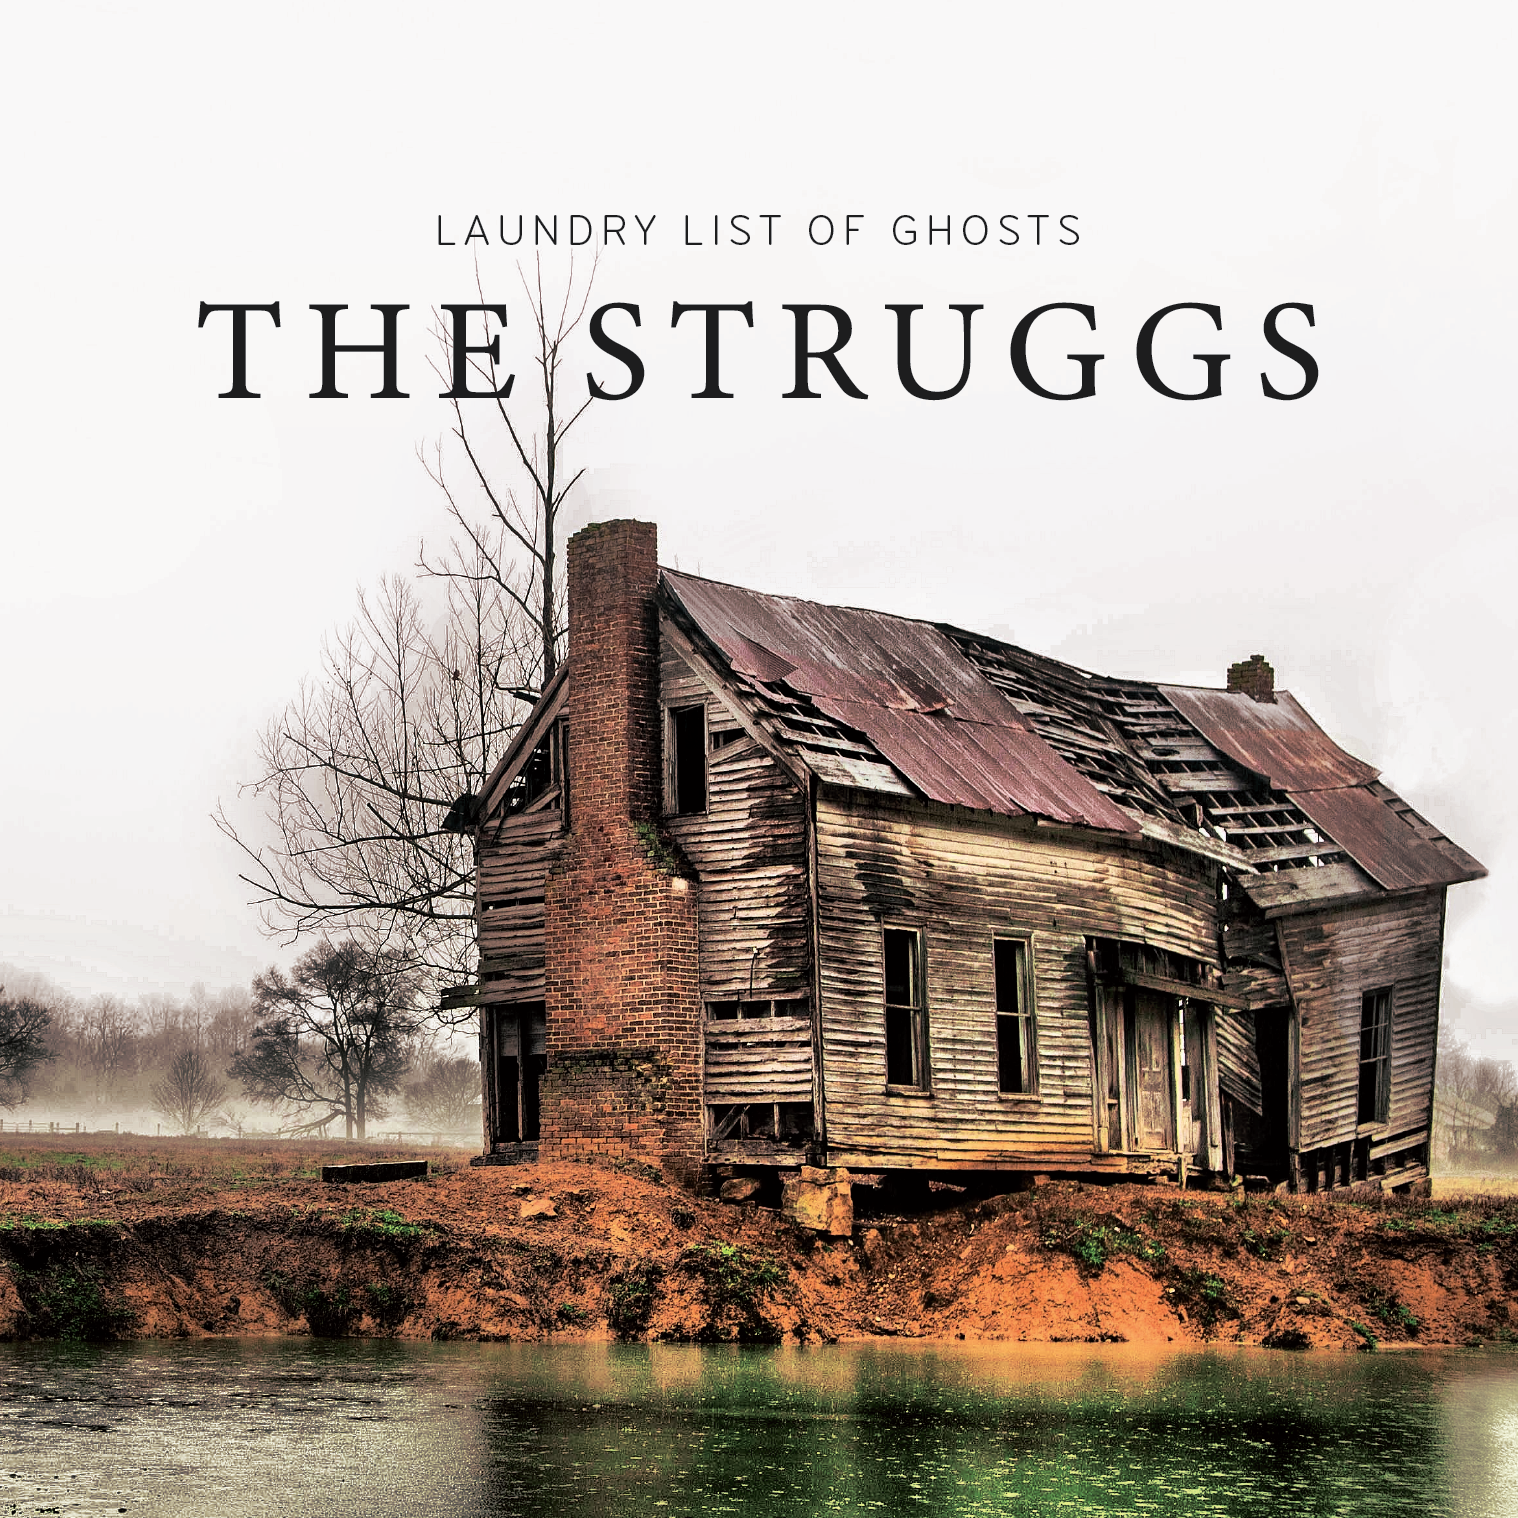 TheStruggs-AlbumArt.png